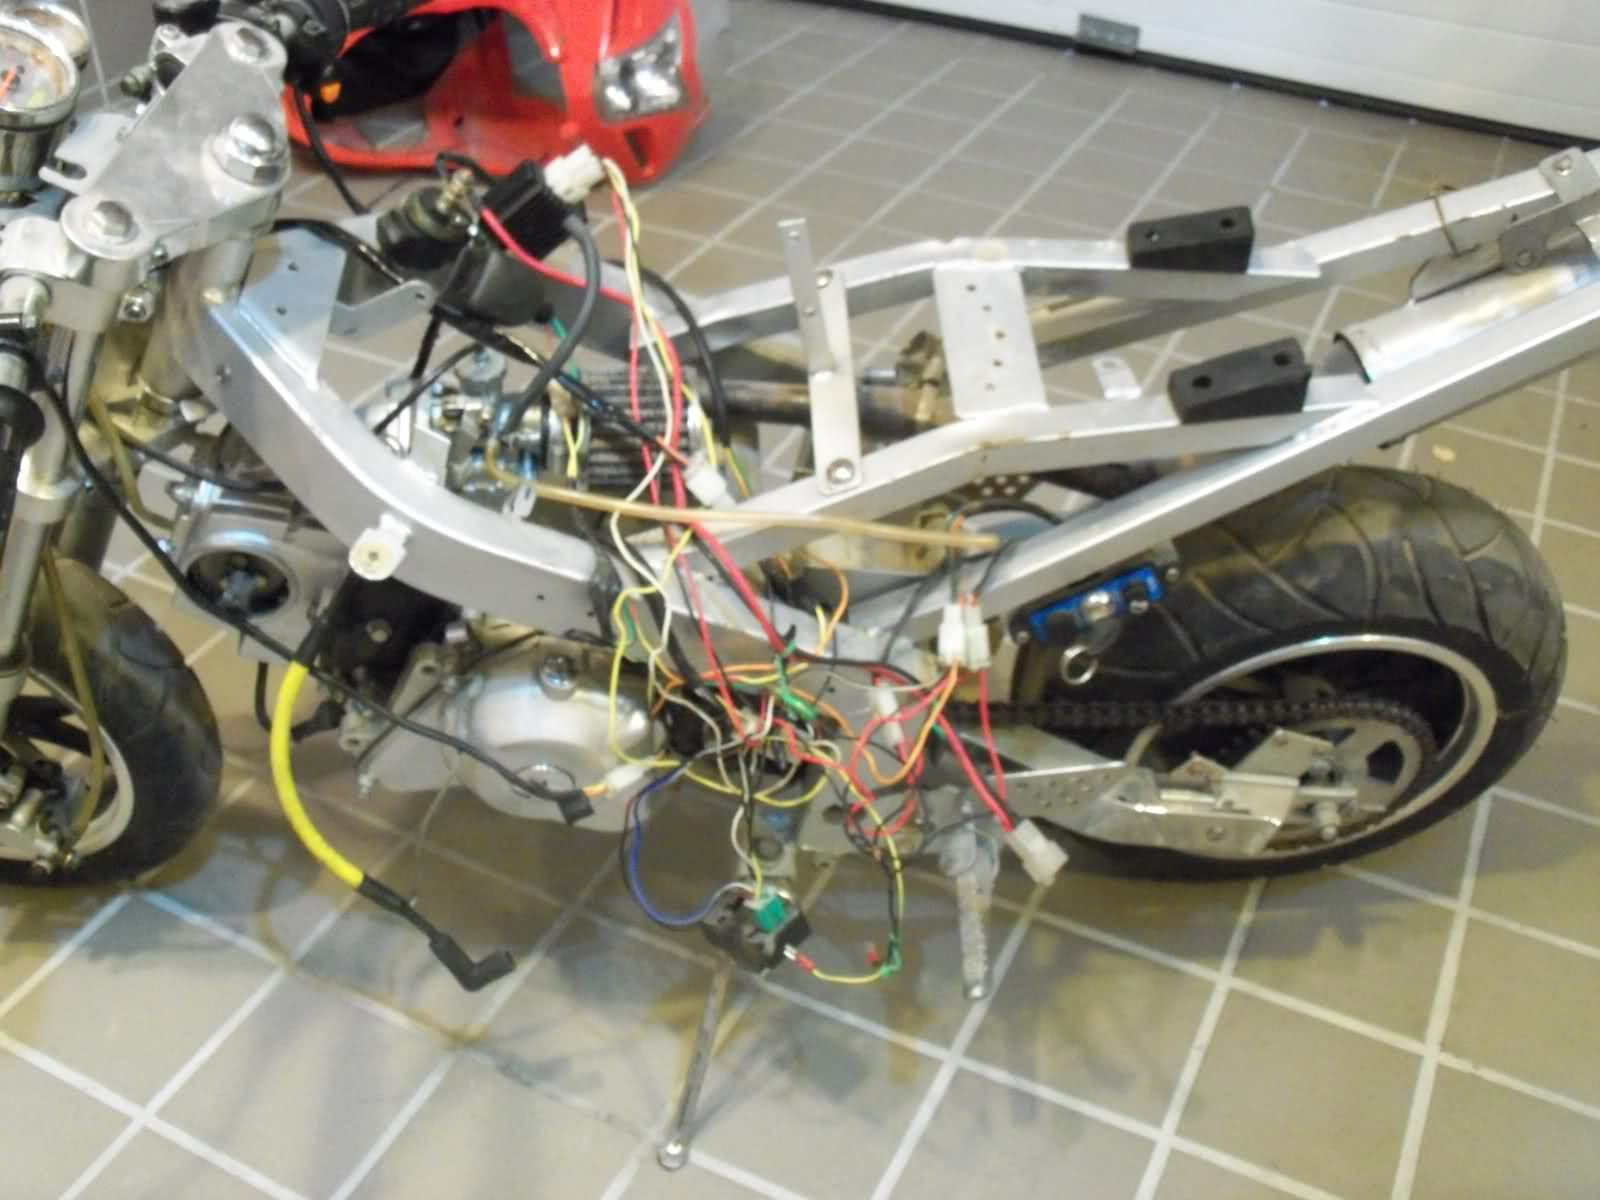 Electrical Wiring Diagram Of Motorcycle Bookingritzcarlton Info Electrical Wiring Electrical Wiring Diagram Home Electrical Wiring